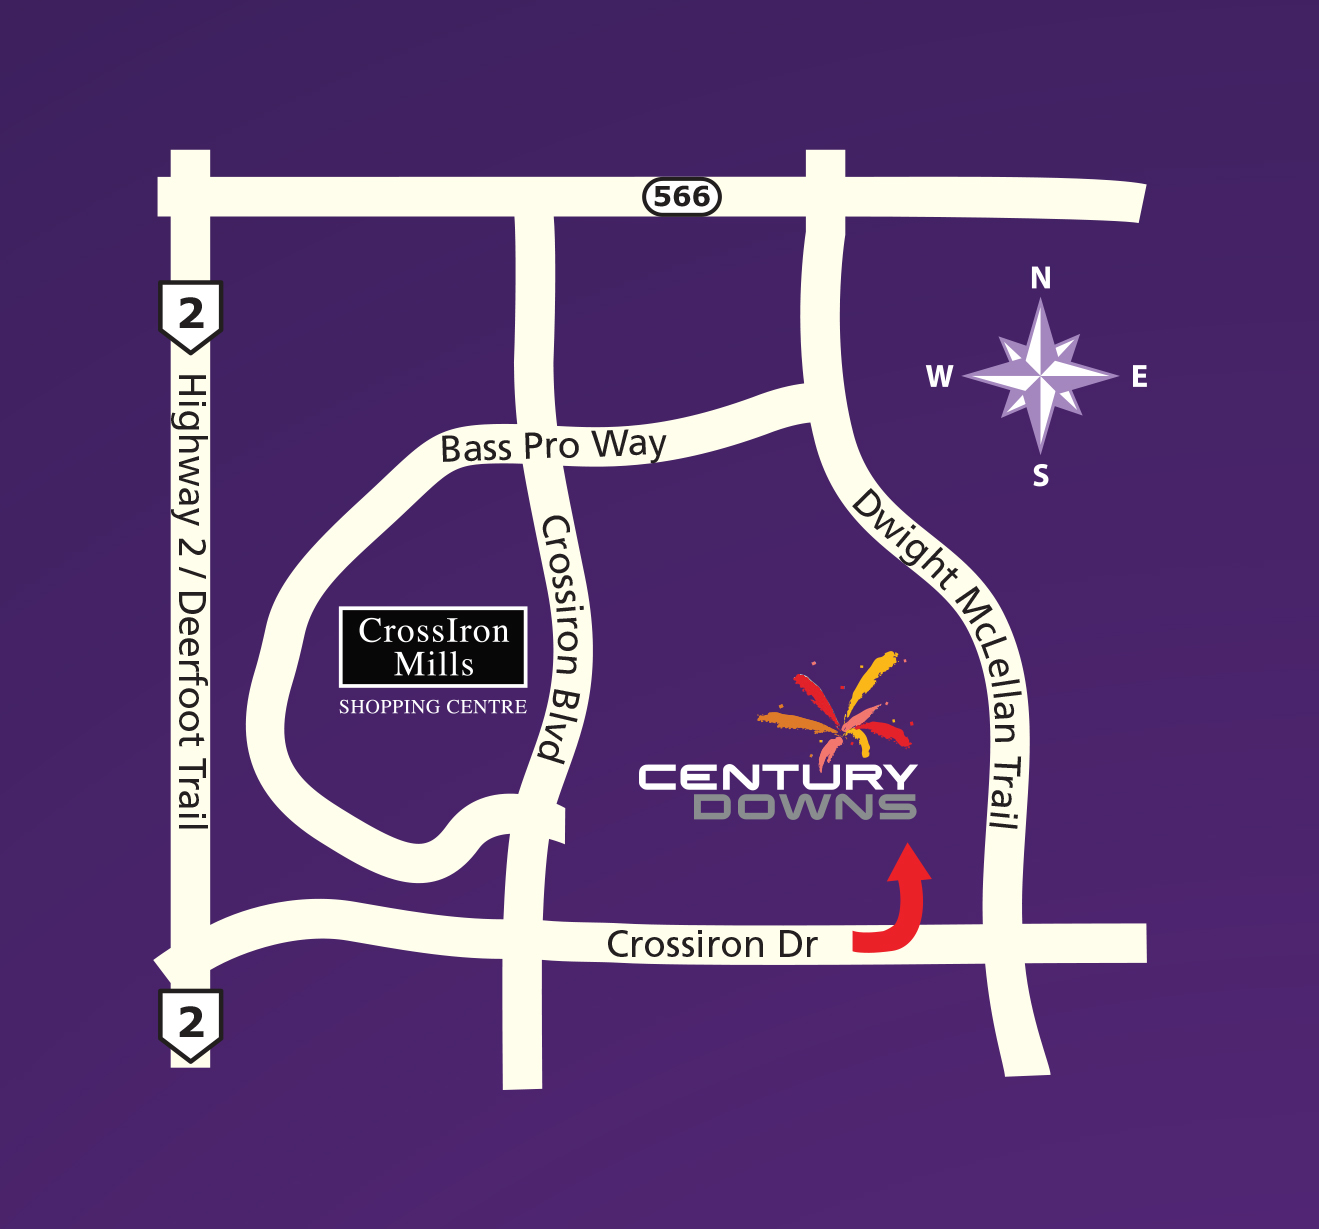 Driving Map to Century Downs